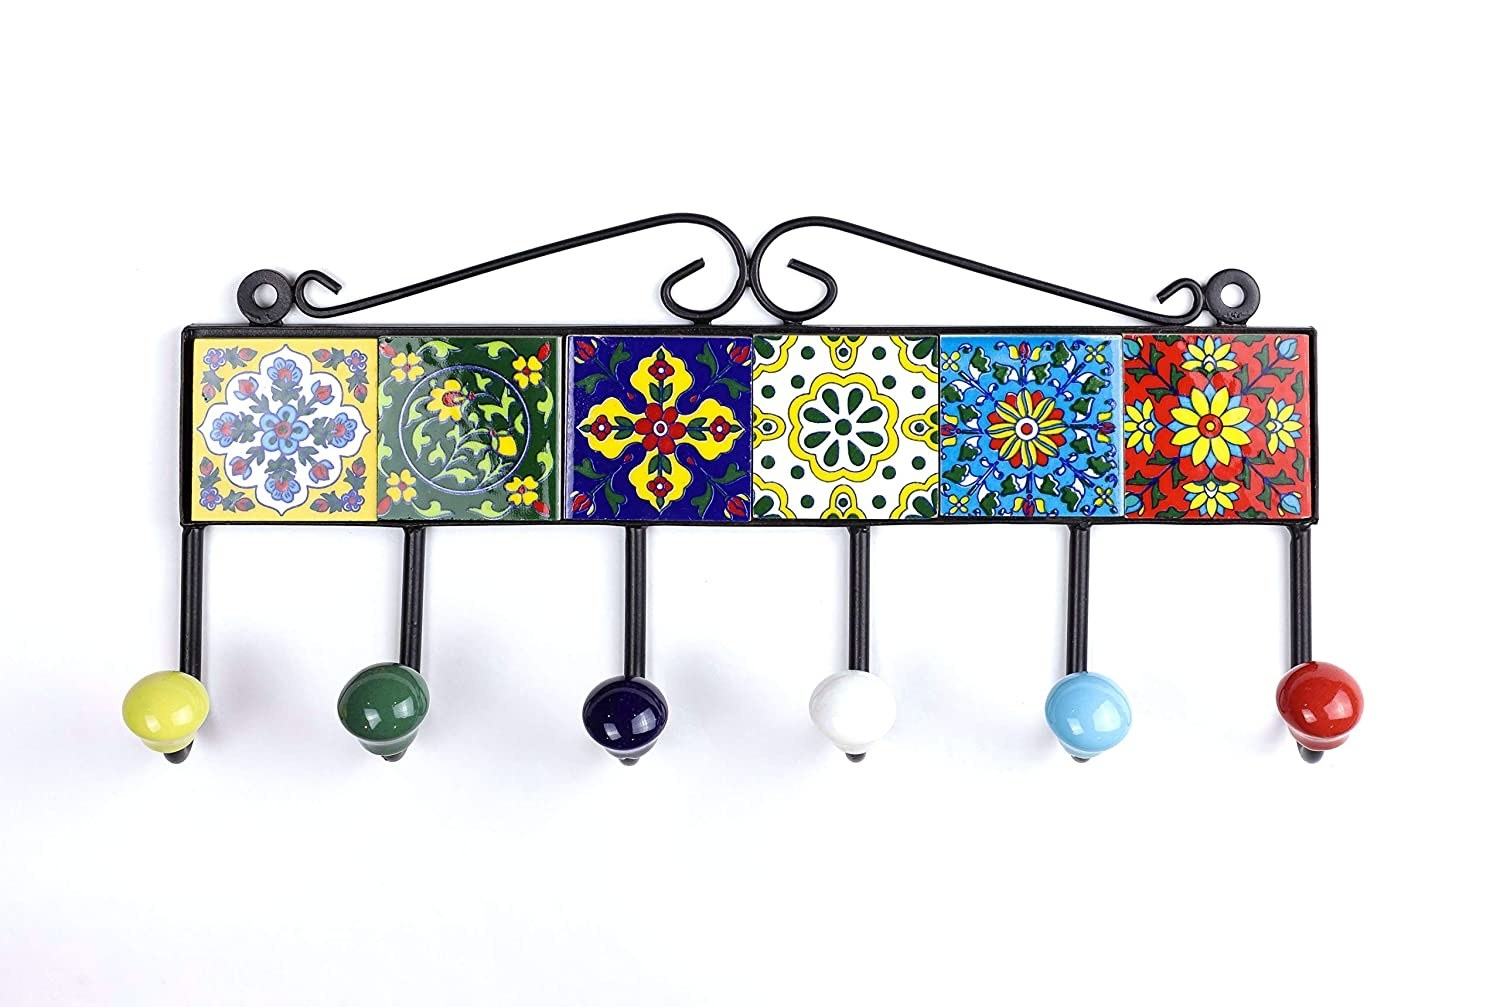 An iron key holder fitted with colorful blue pottery tiles and 6 colourful ceramic hook ends